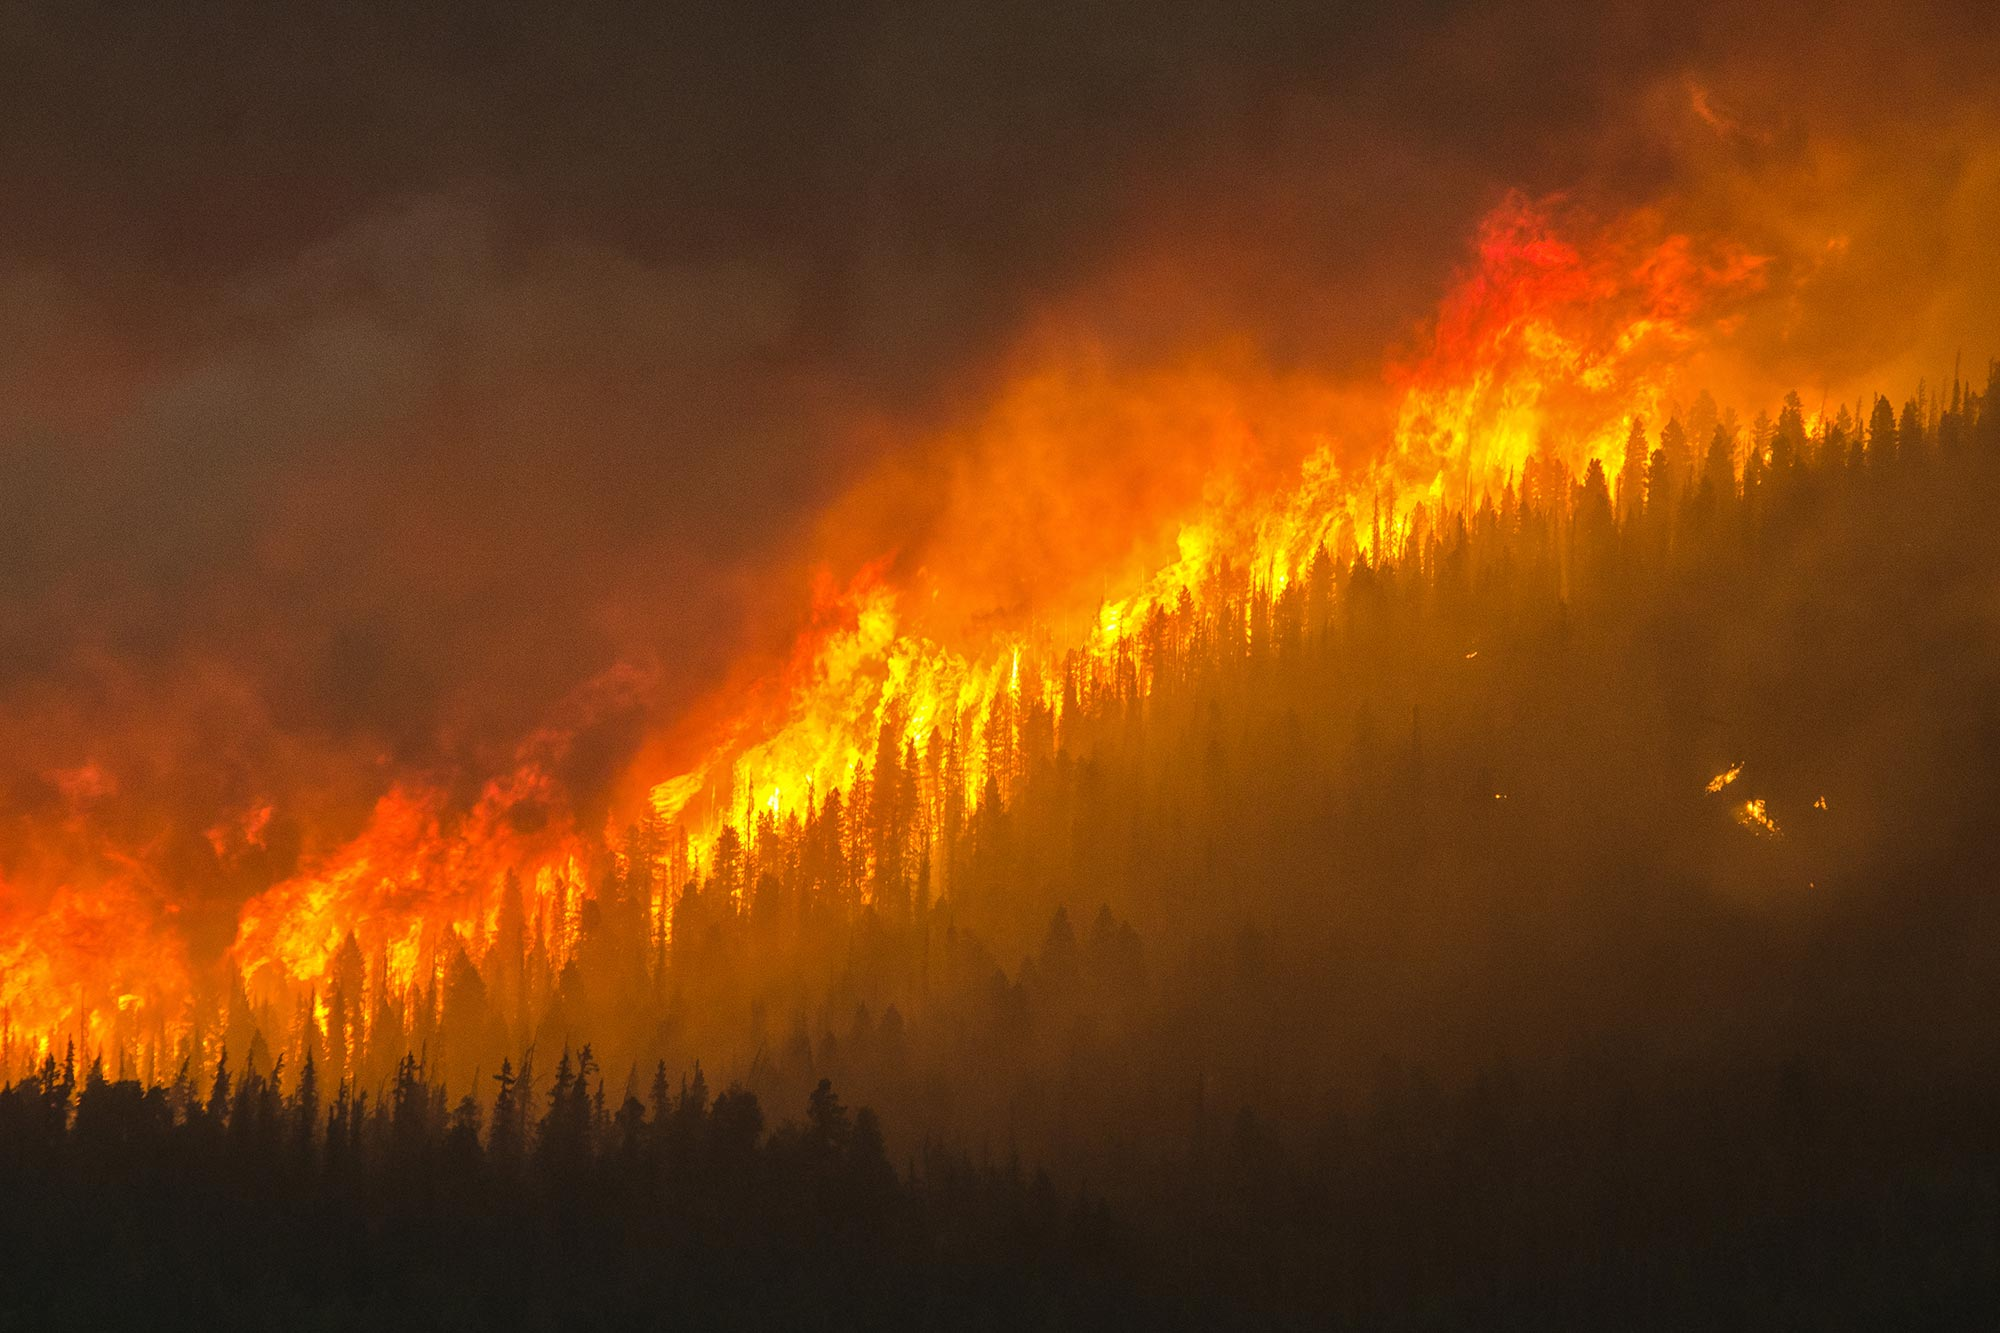 Increased Threat of Fierce Fires and Accelerated Global Warming From Water  Loss in Northern Peatlands